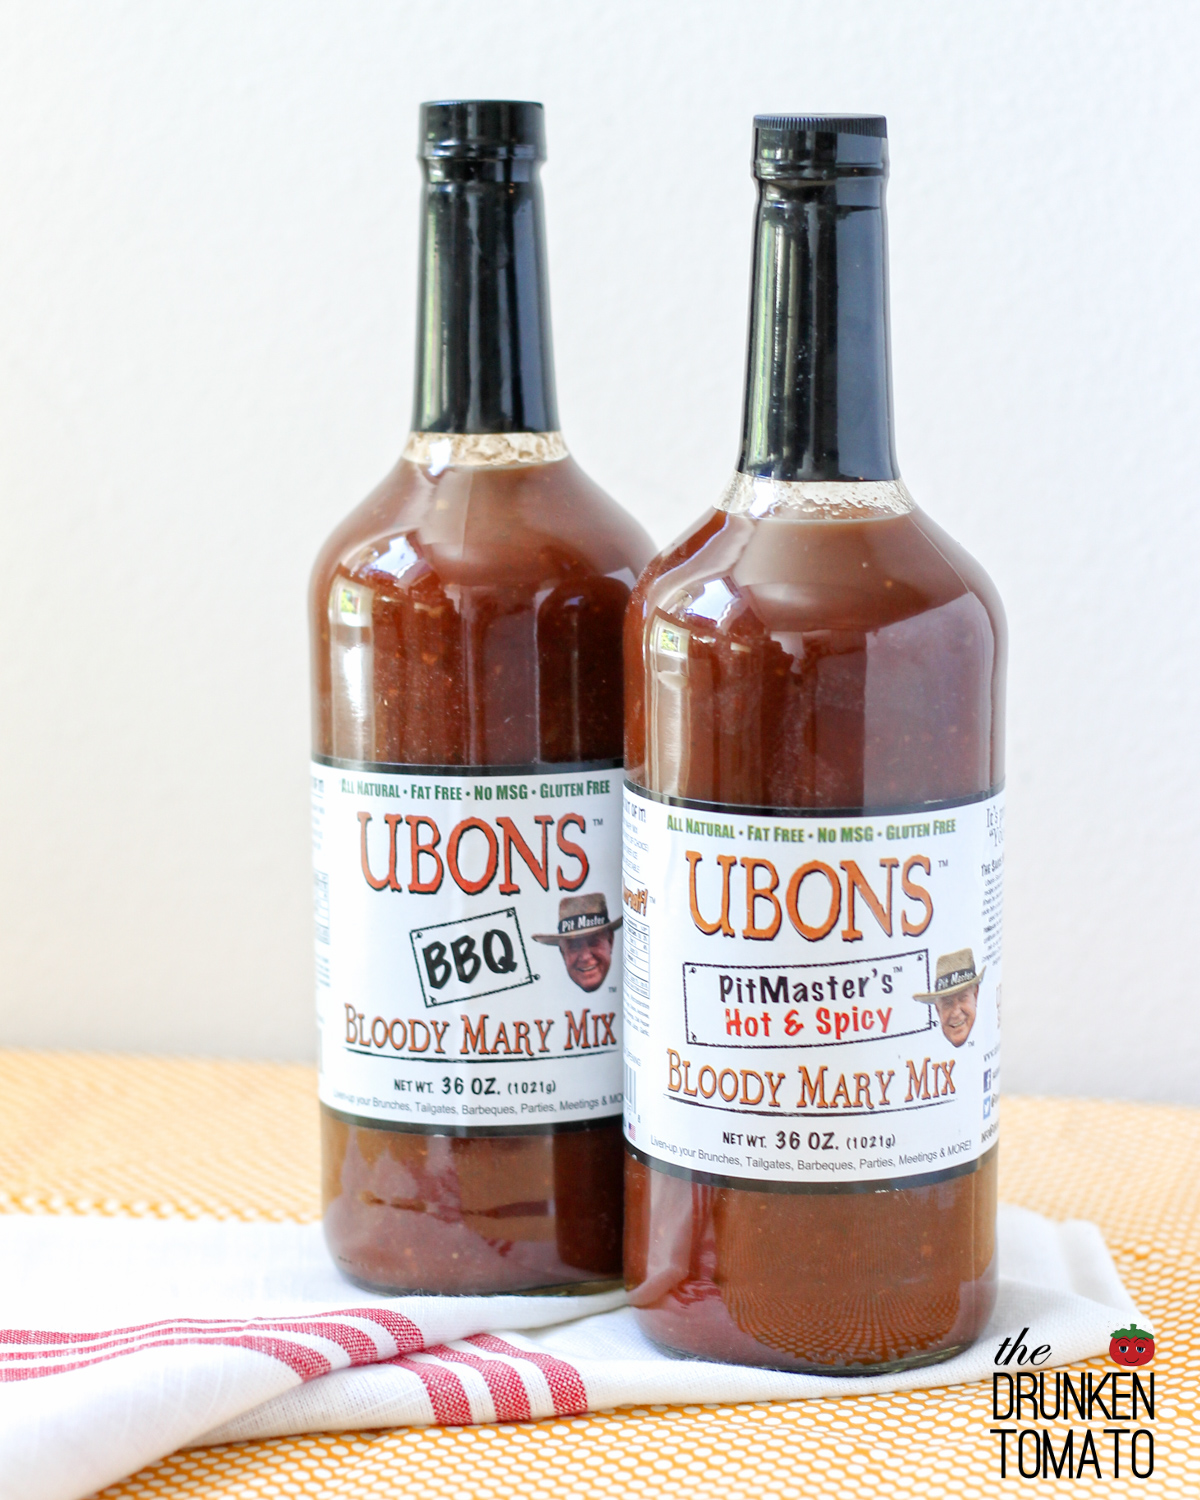 Ubons Bloody Mary Mix Review